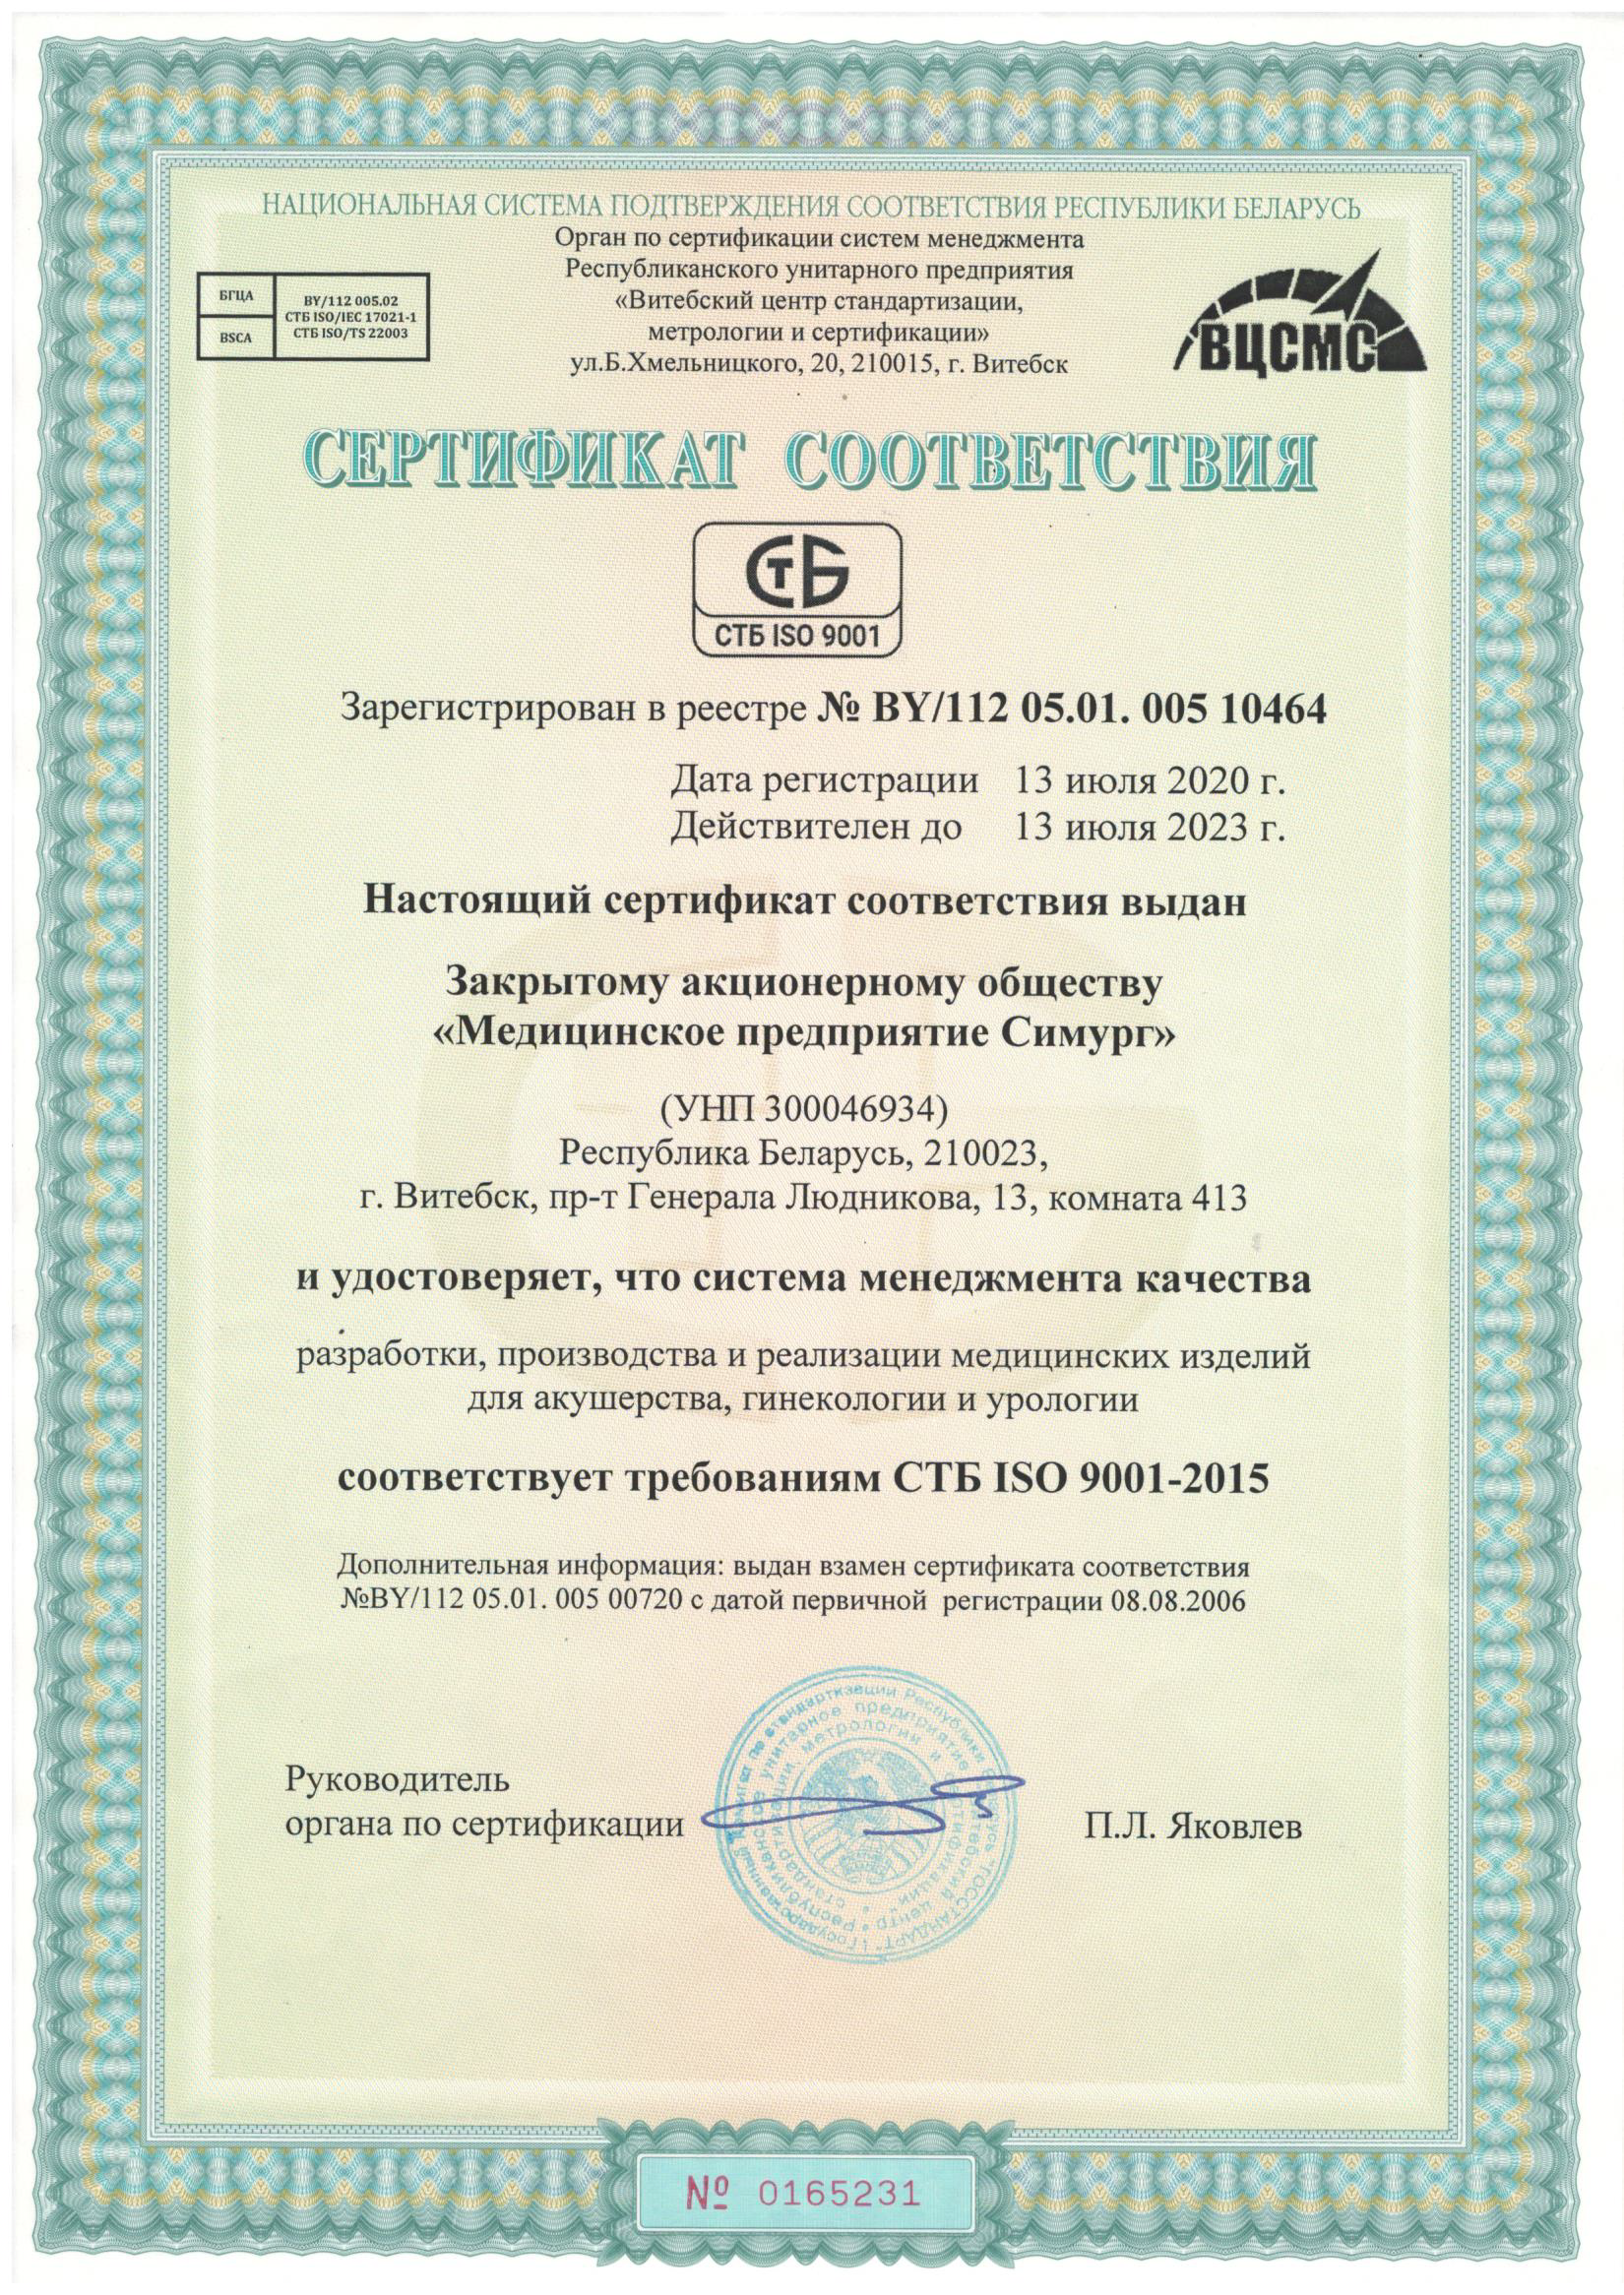 2020 stb iso 9001 1